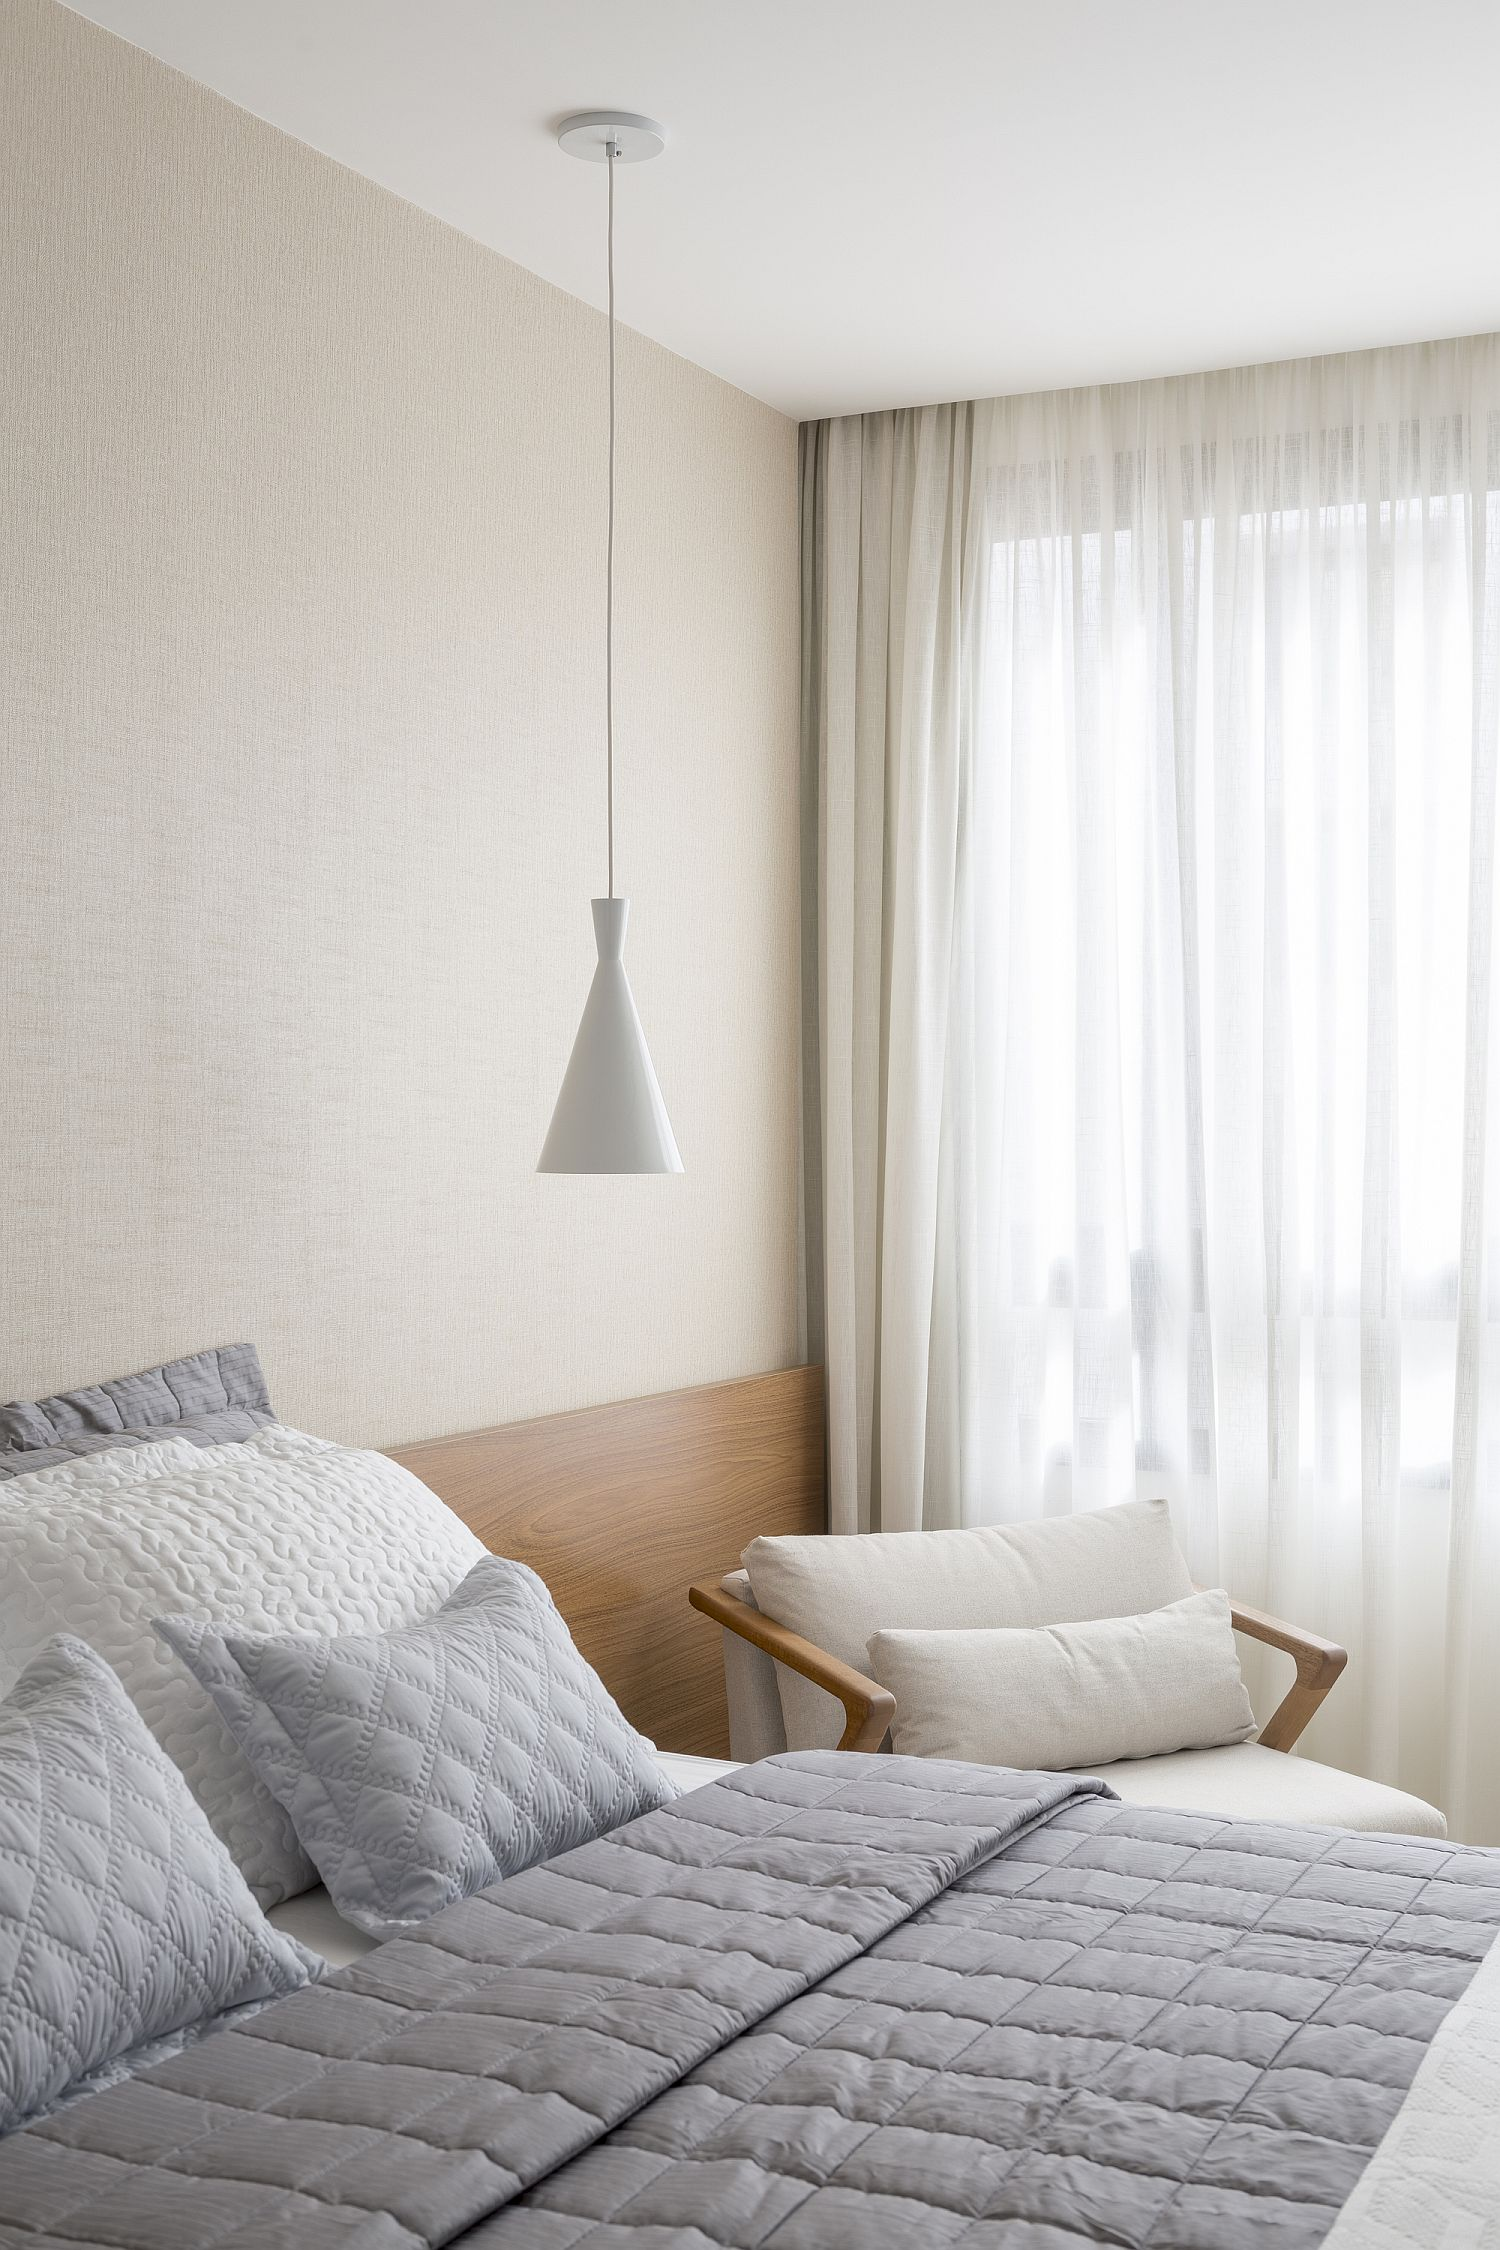 Berdoom-neutral-hues-and-ample-natural-light